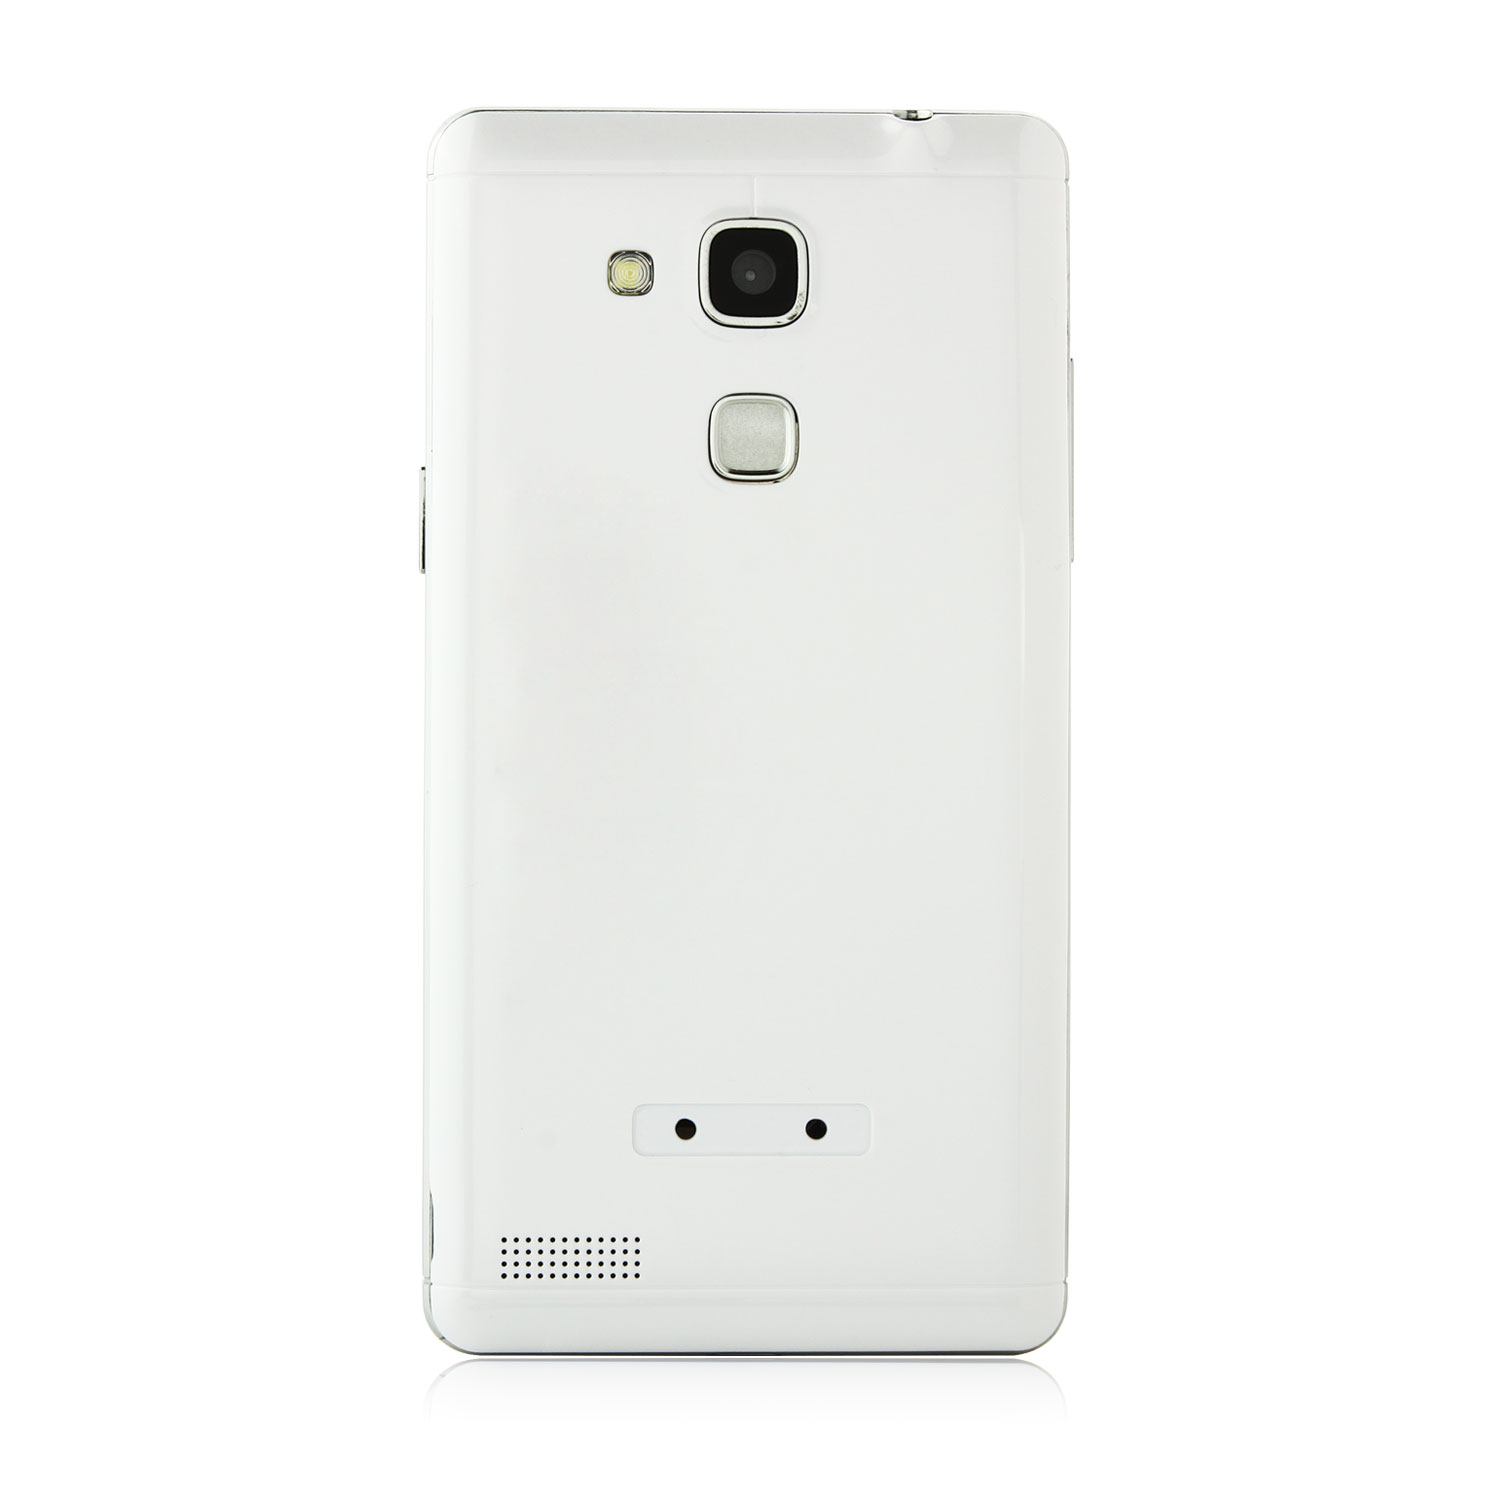 Tengda Q5 Smartphone Android 4.4 MTK6572W 4.0 Inch 3G White